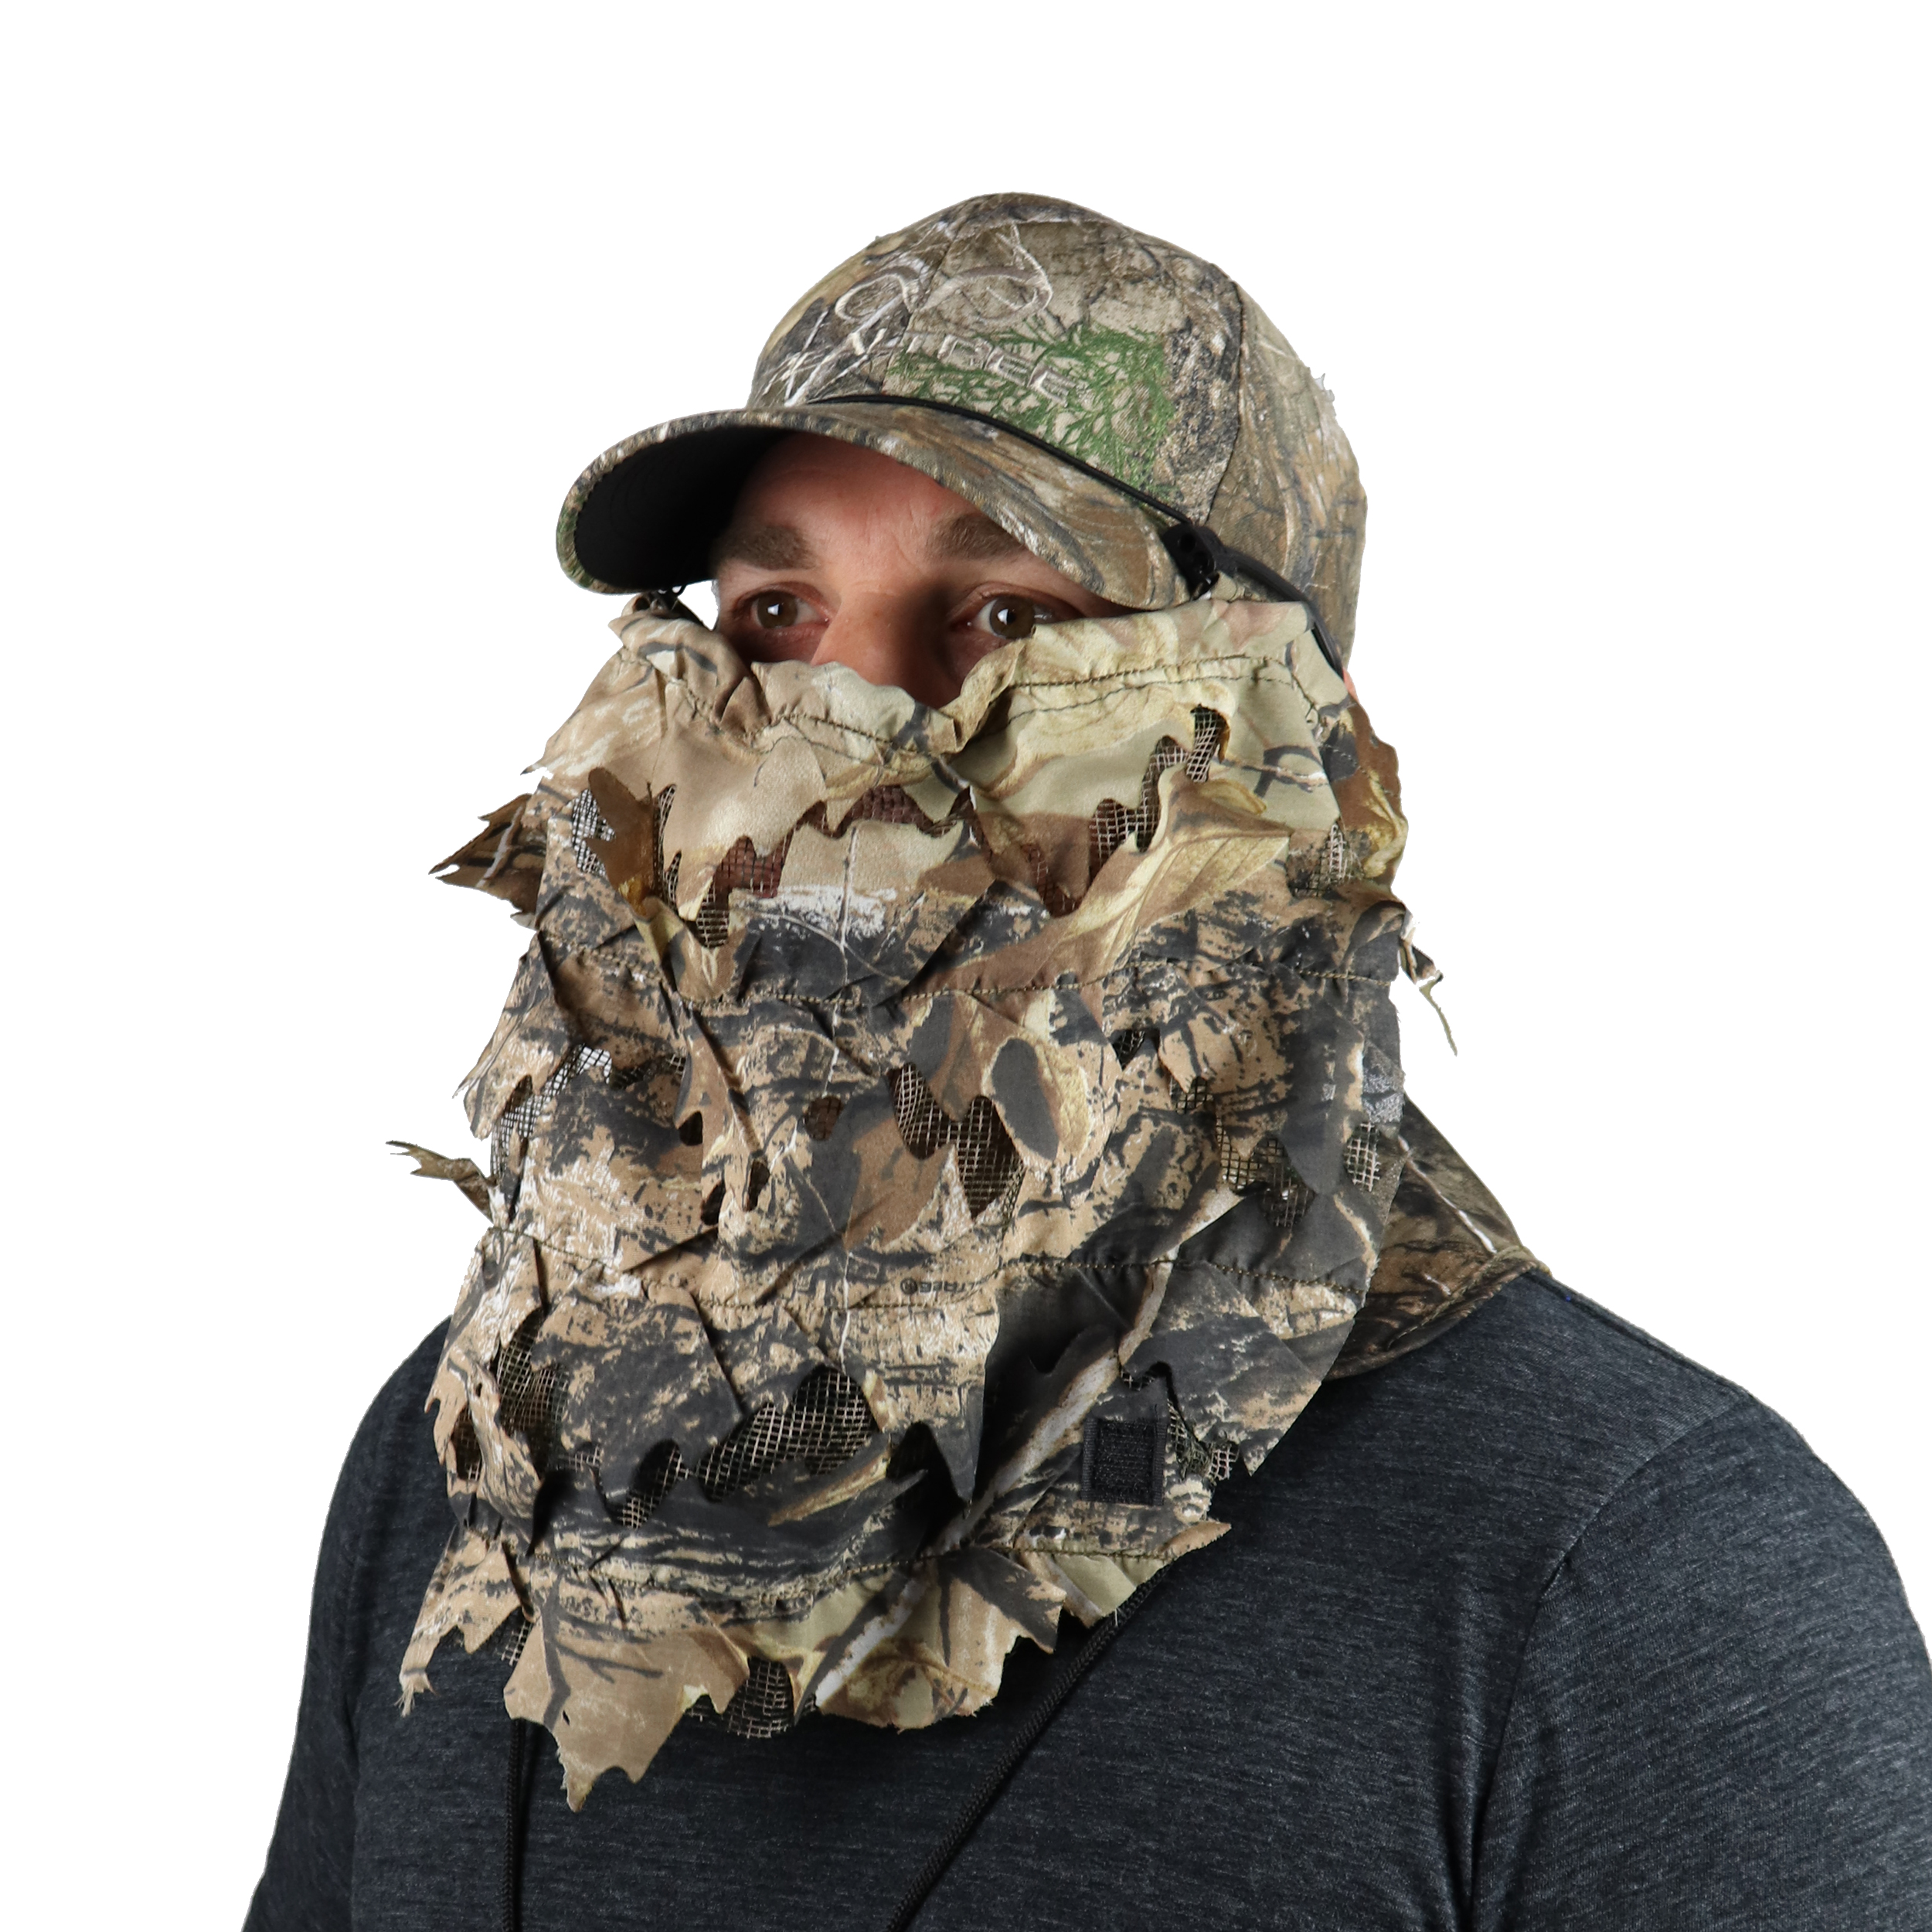 BunkerHead Realtree AP Leafy and Cotton System